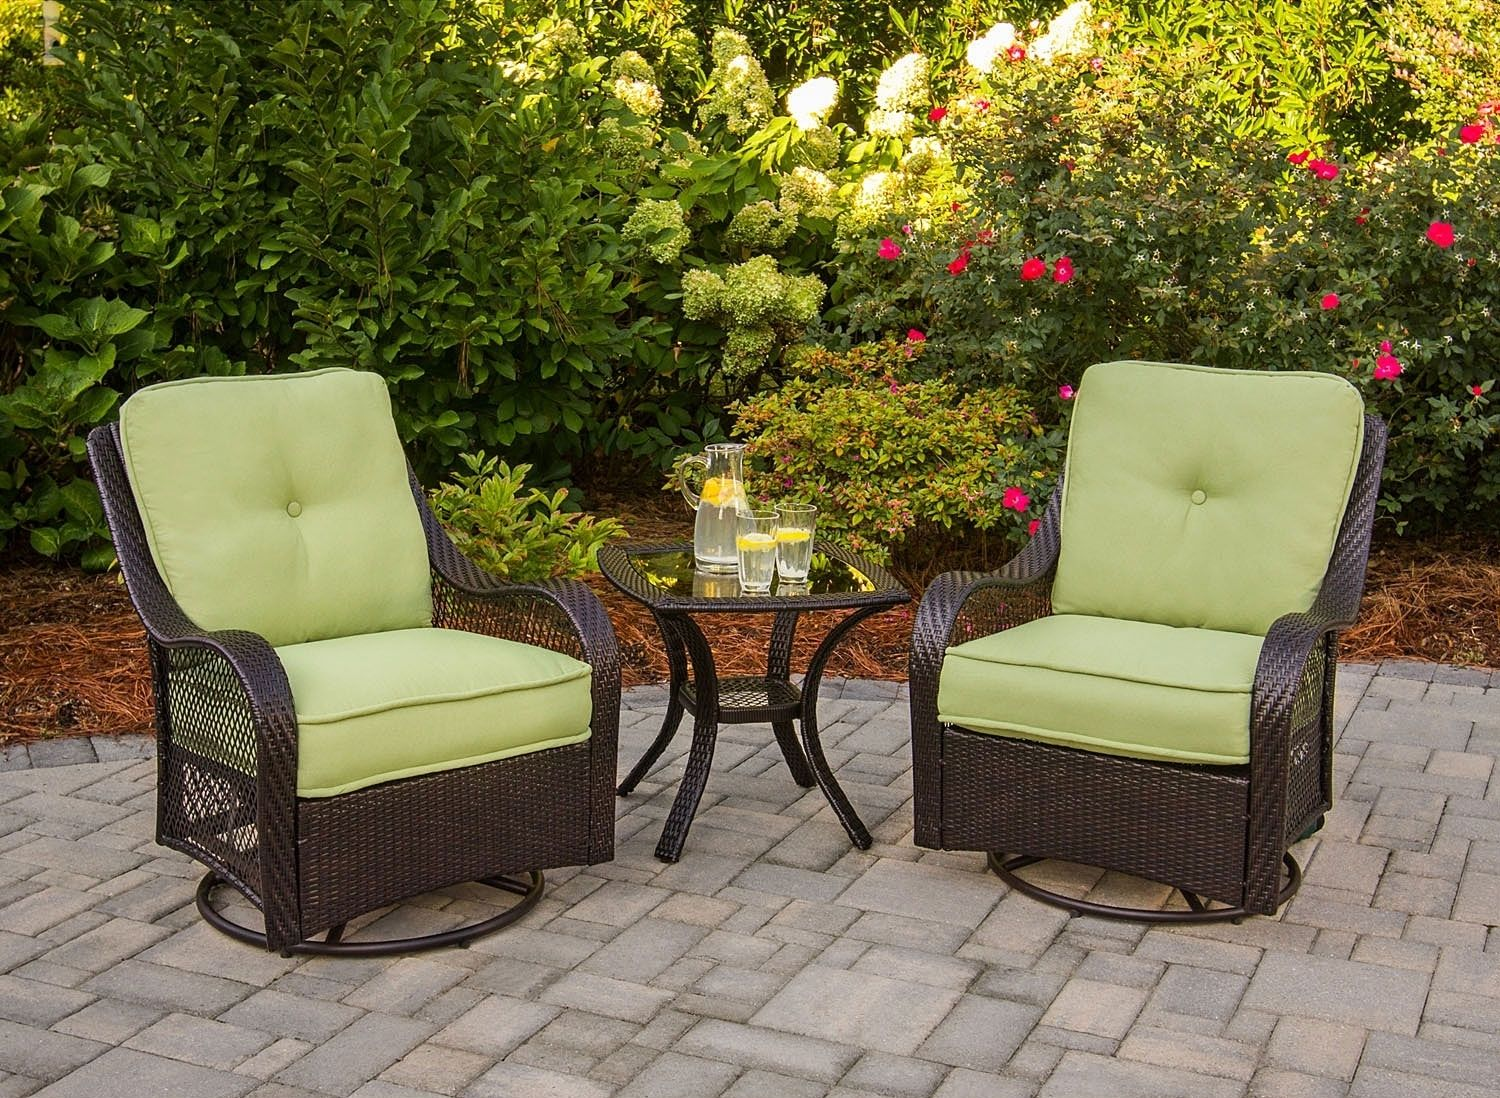 Etonnant 10 Most Stylish 3 Piece Patio Furniture Set Under 100 Bucks